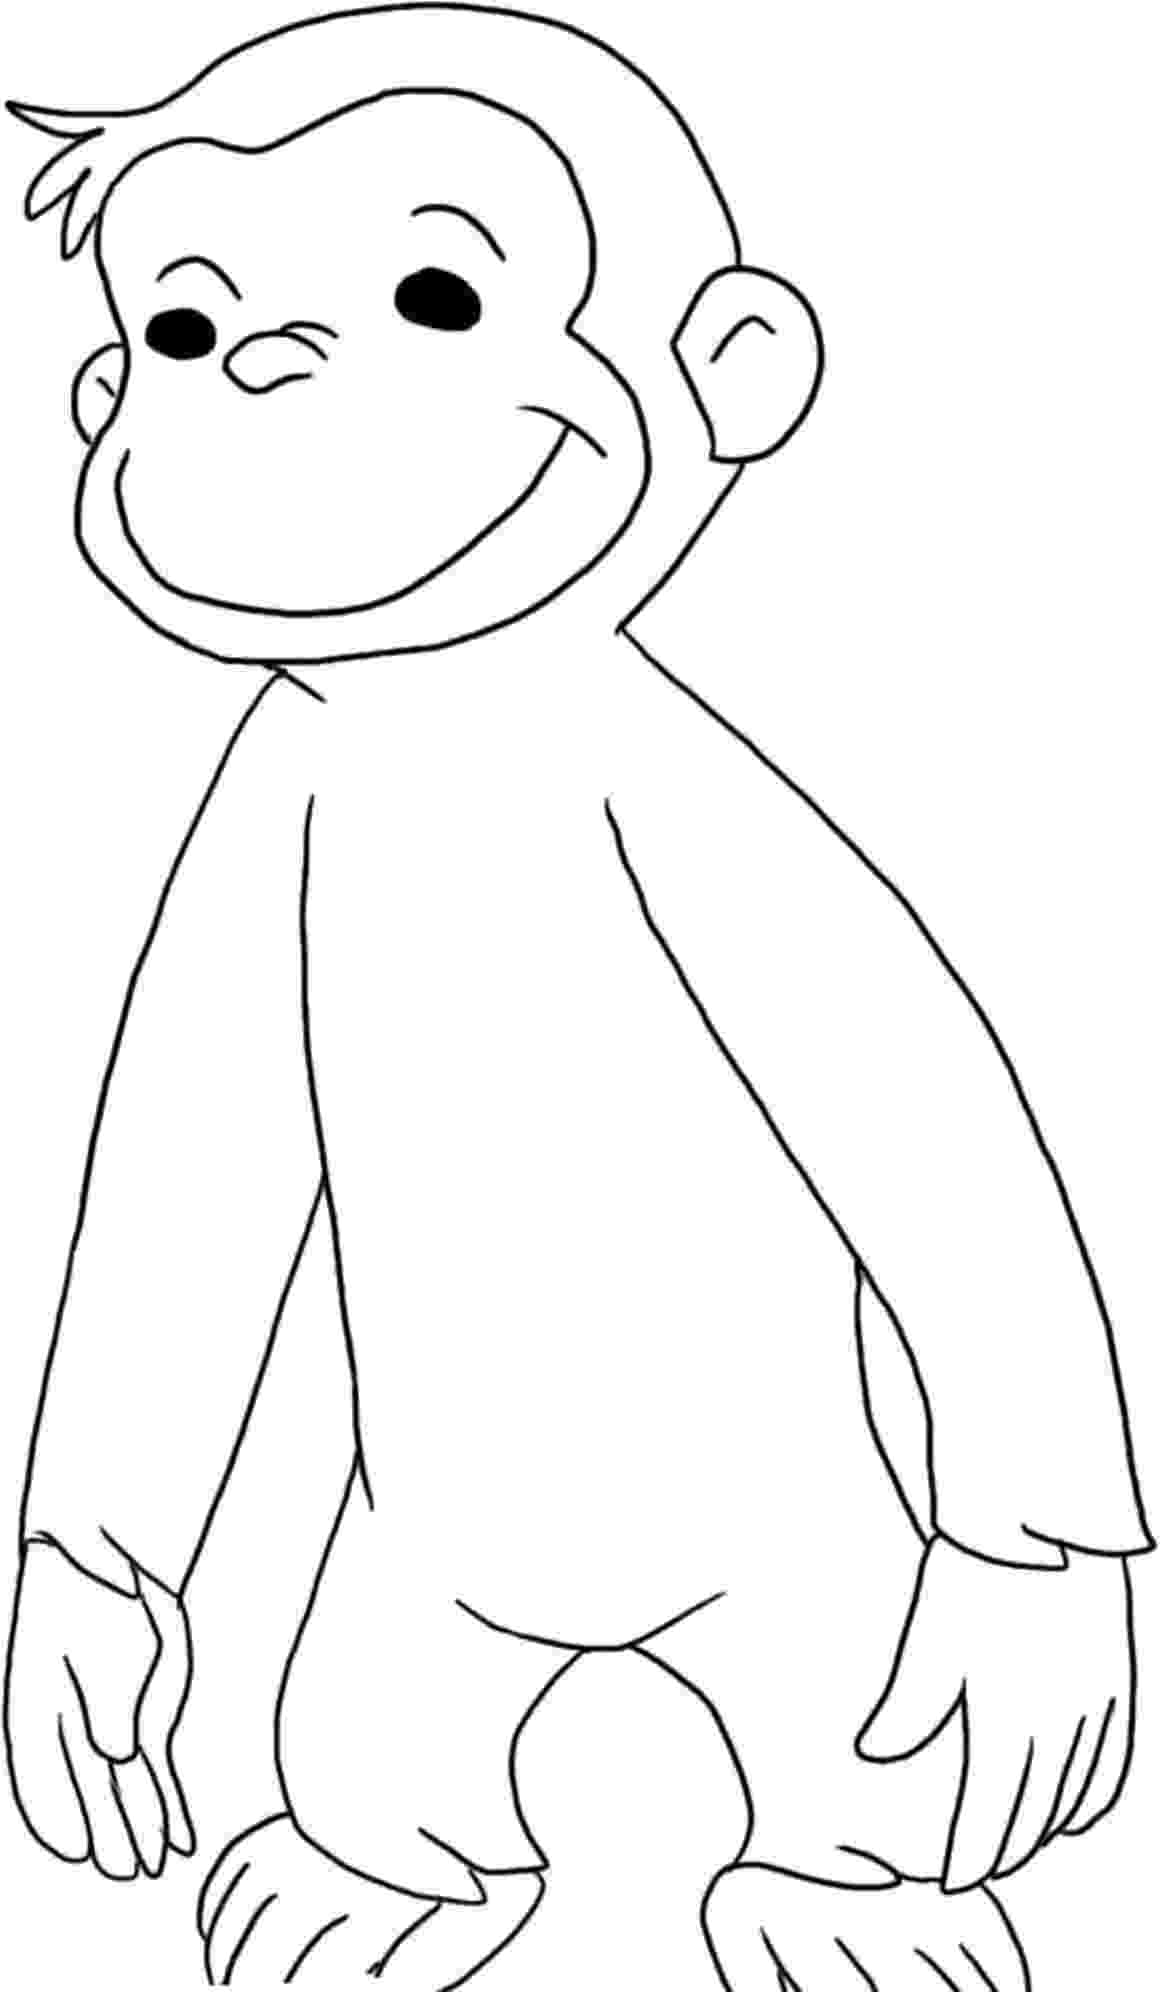 free printable curious george coloring pages curious george coloring pages best coloring pages for kids george free coloring pages printable curious